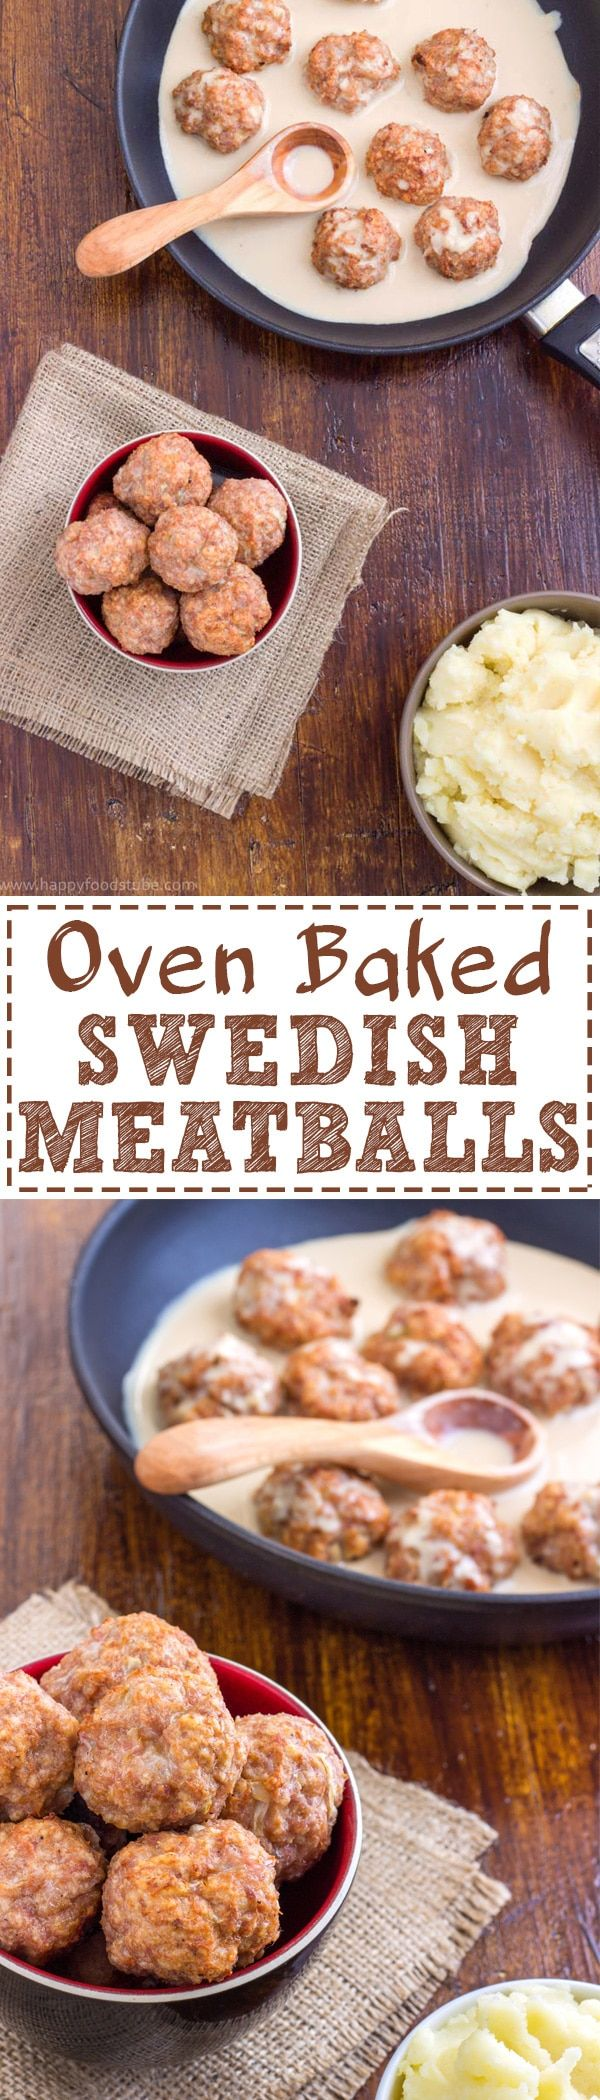 Homemade Oven Baked Swedish Meatballs Recipe. This hearty dish, served with creamy sauce and mashed potatoes is a classic comfort food. How to make Swedish meatballs via @happyfoodstube